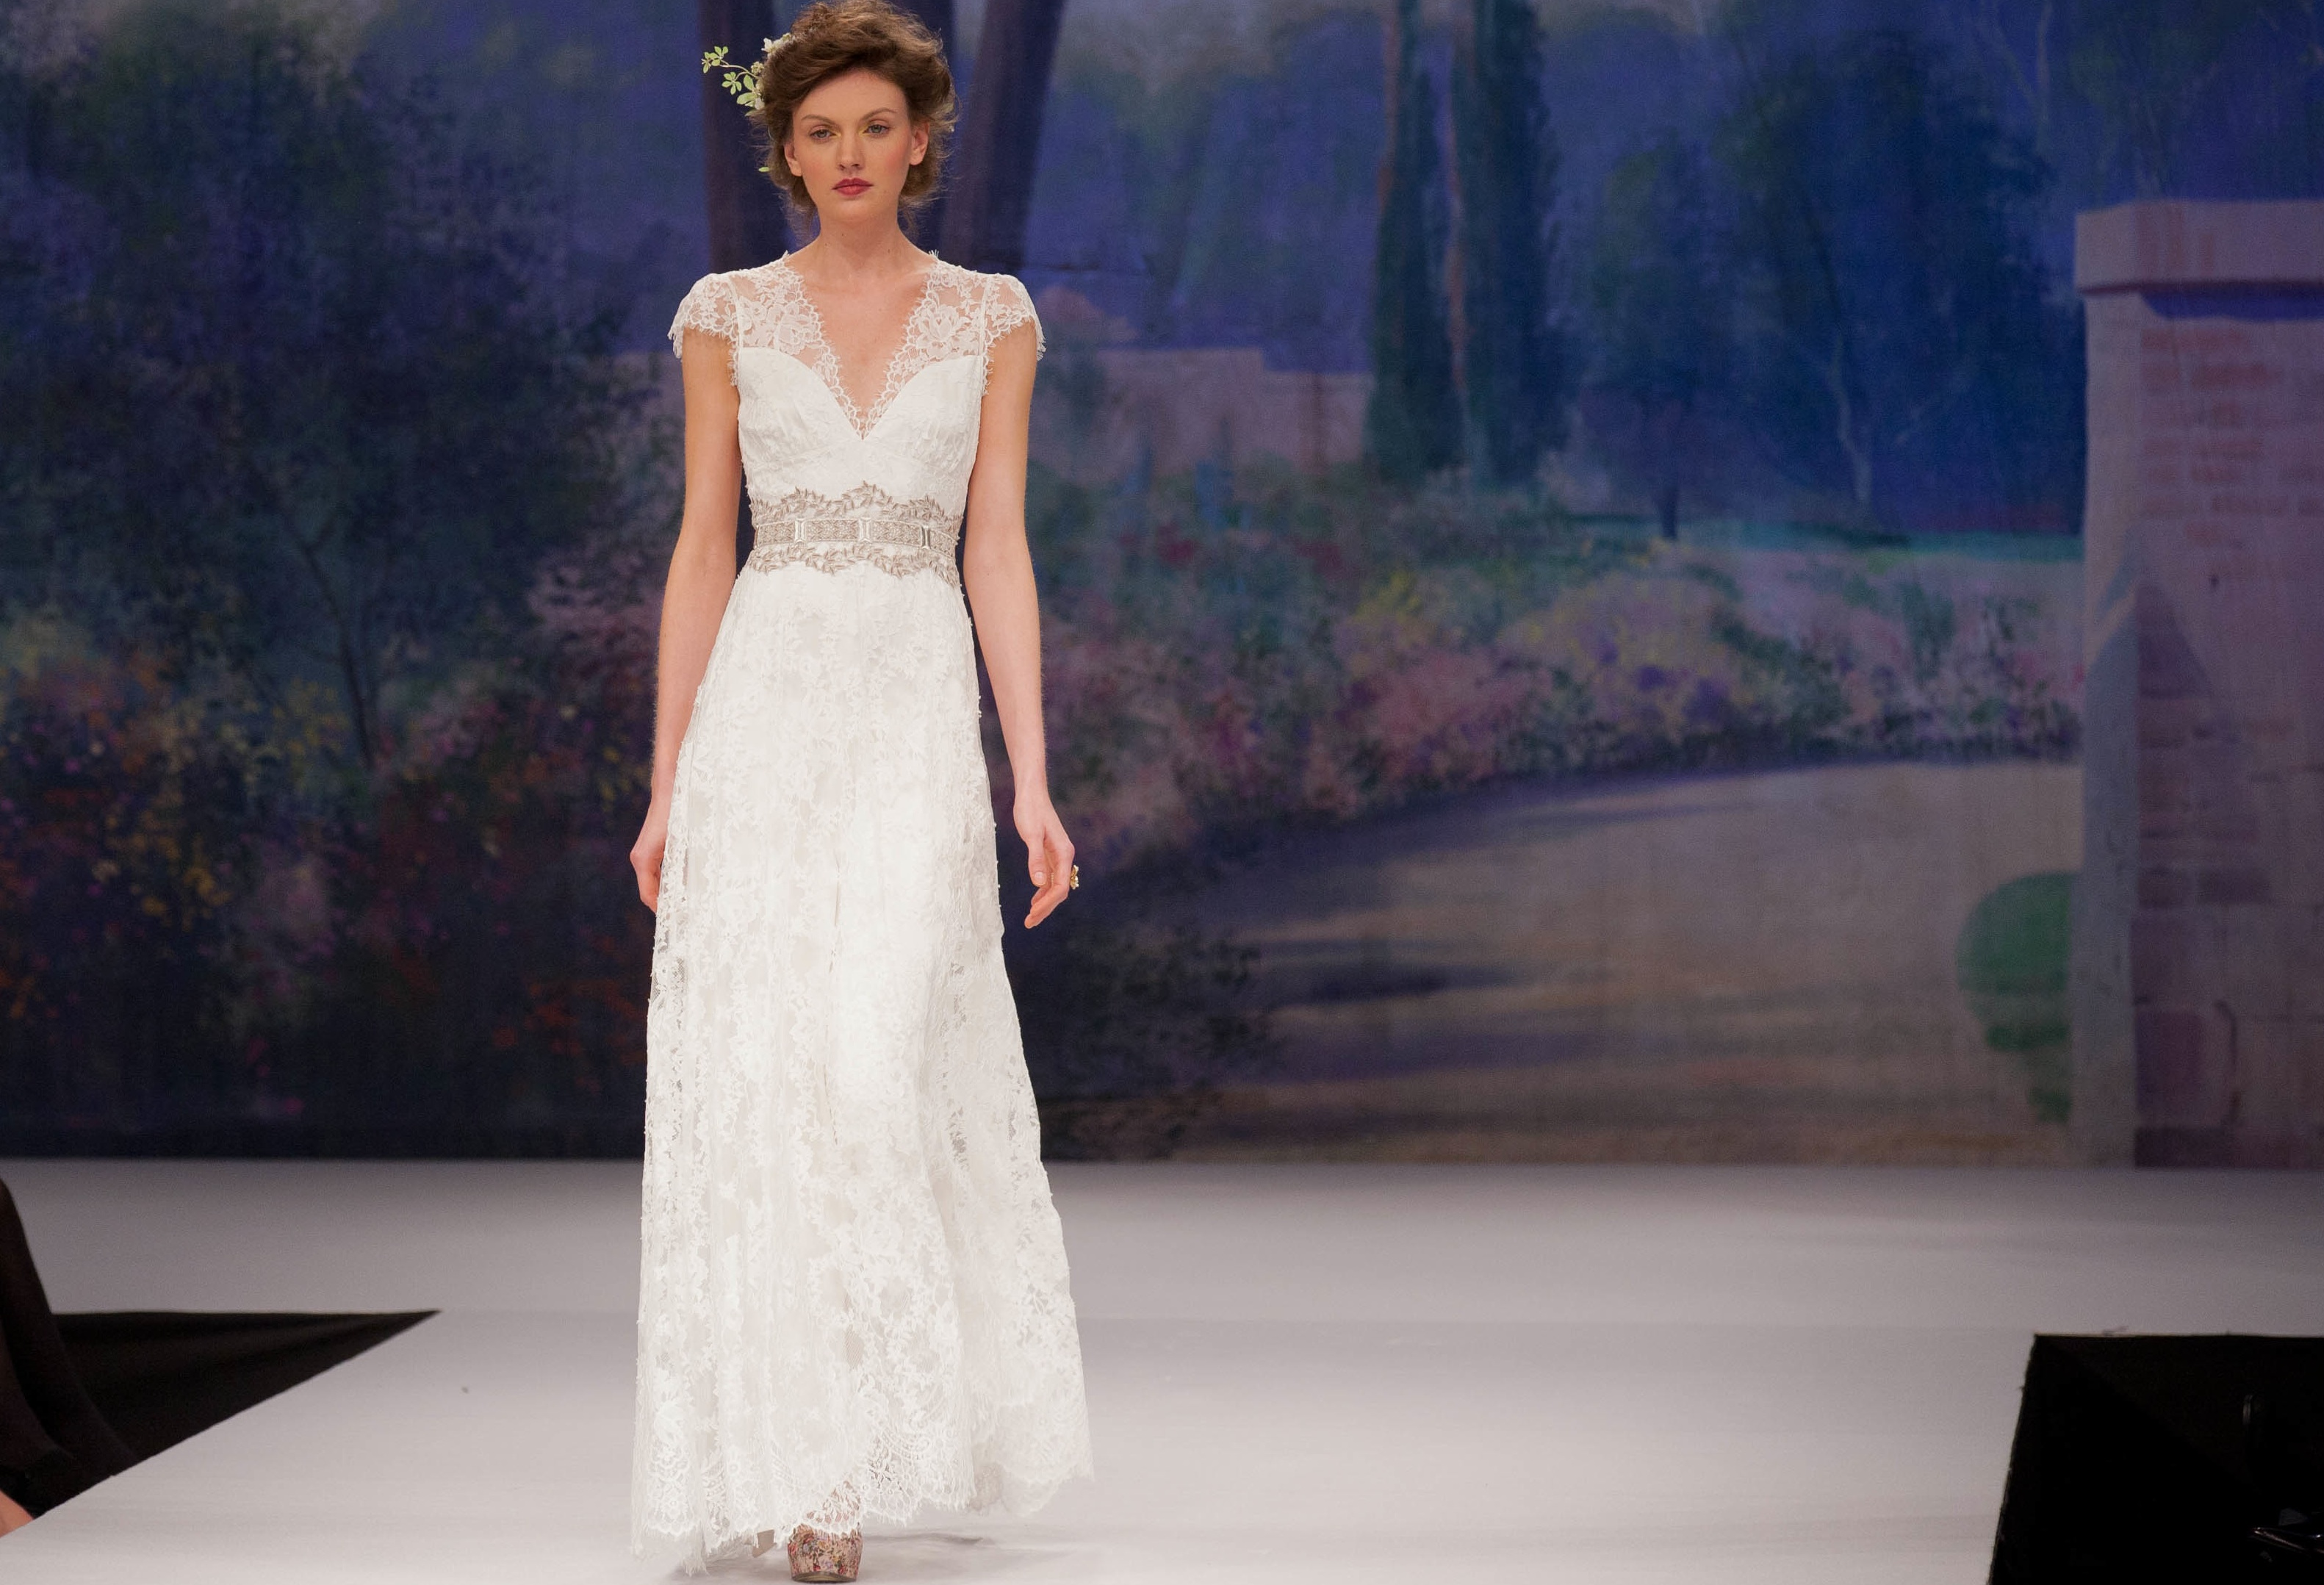 Claire pettibone wedding dress fall 2012 romantic lace for Wedding dress claire pettibone